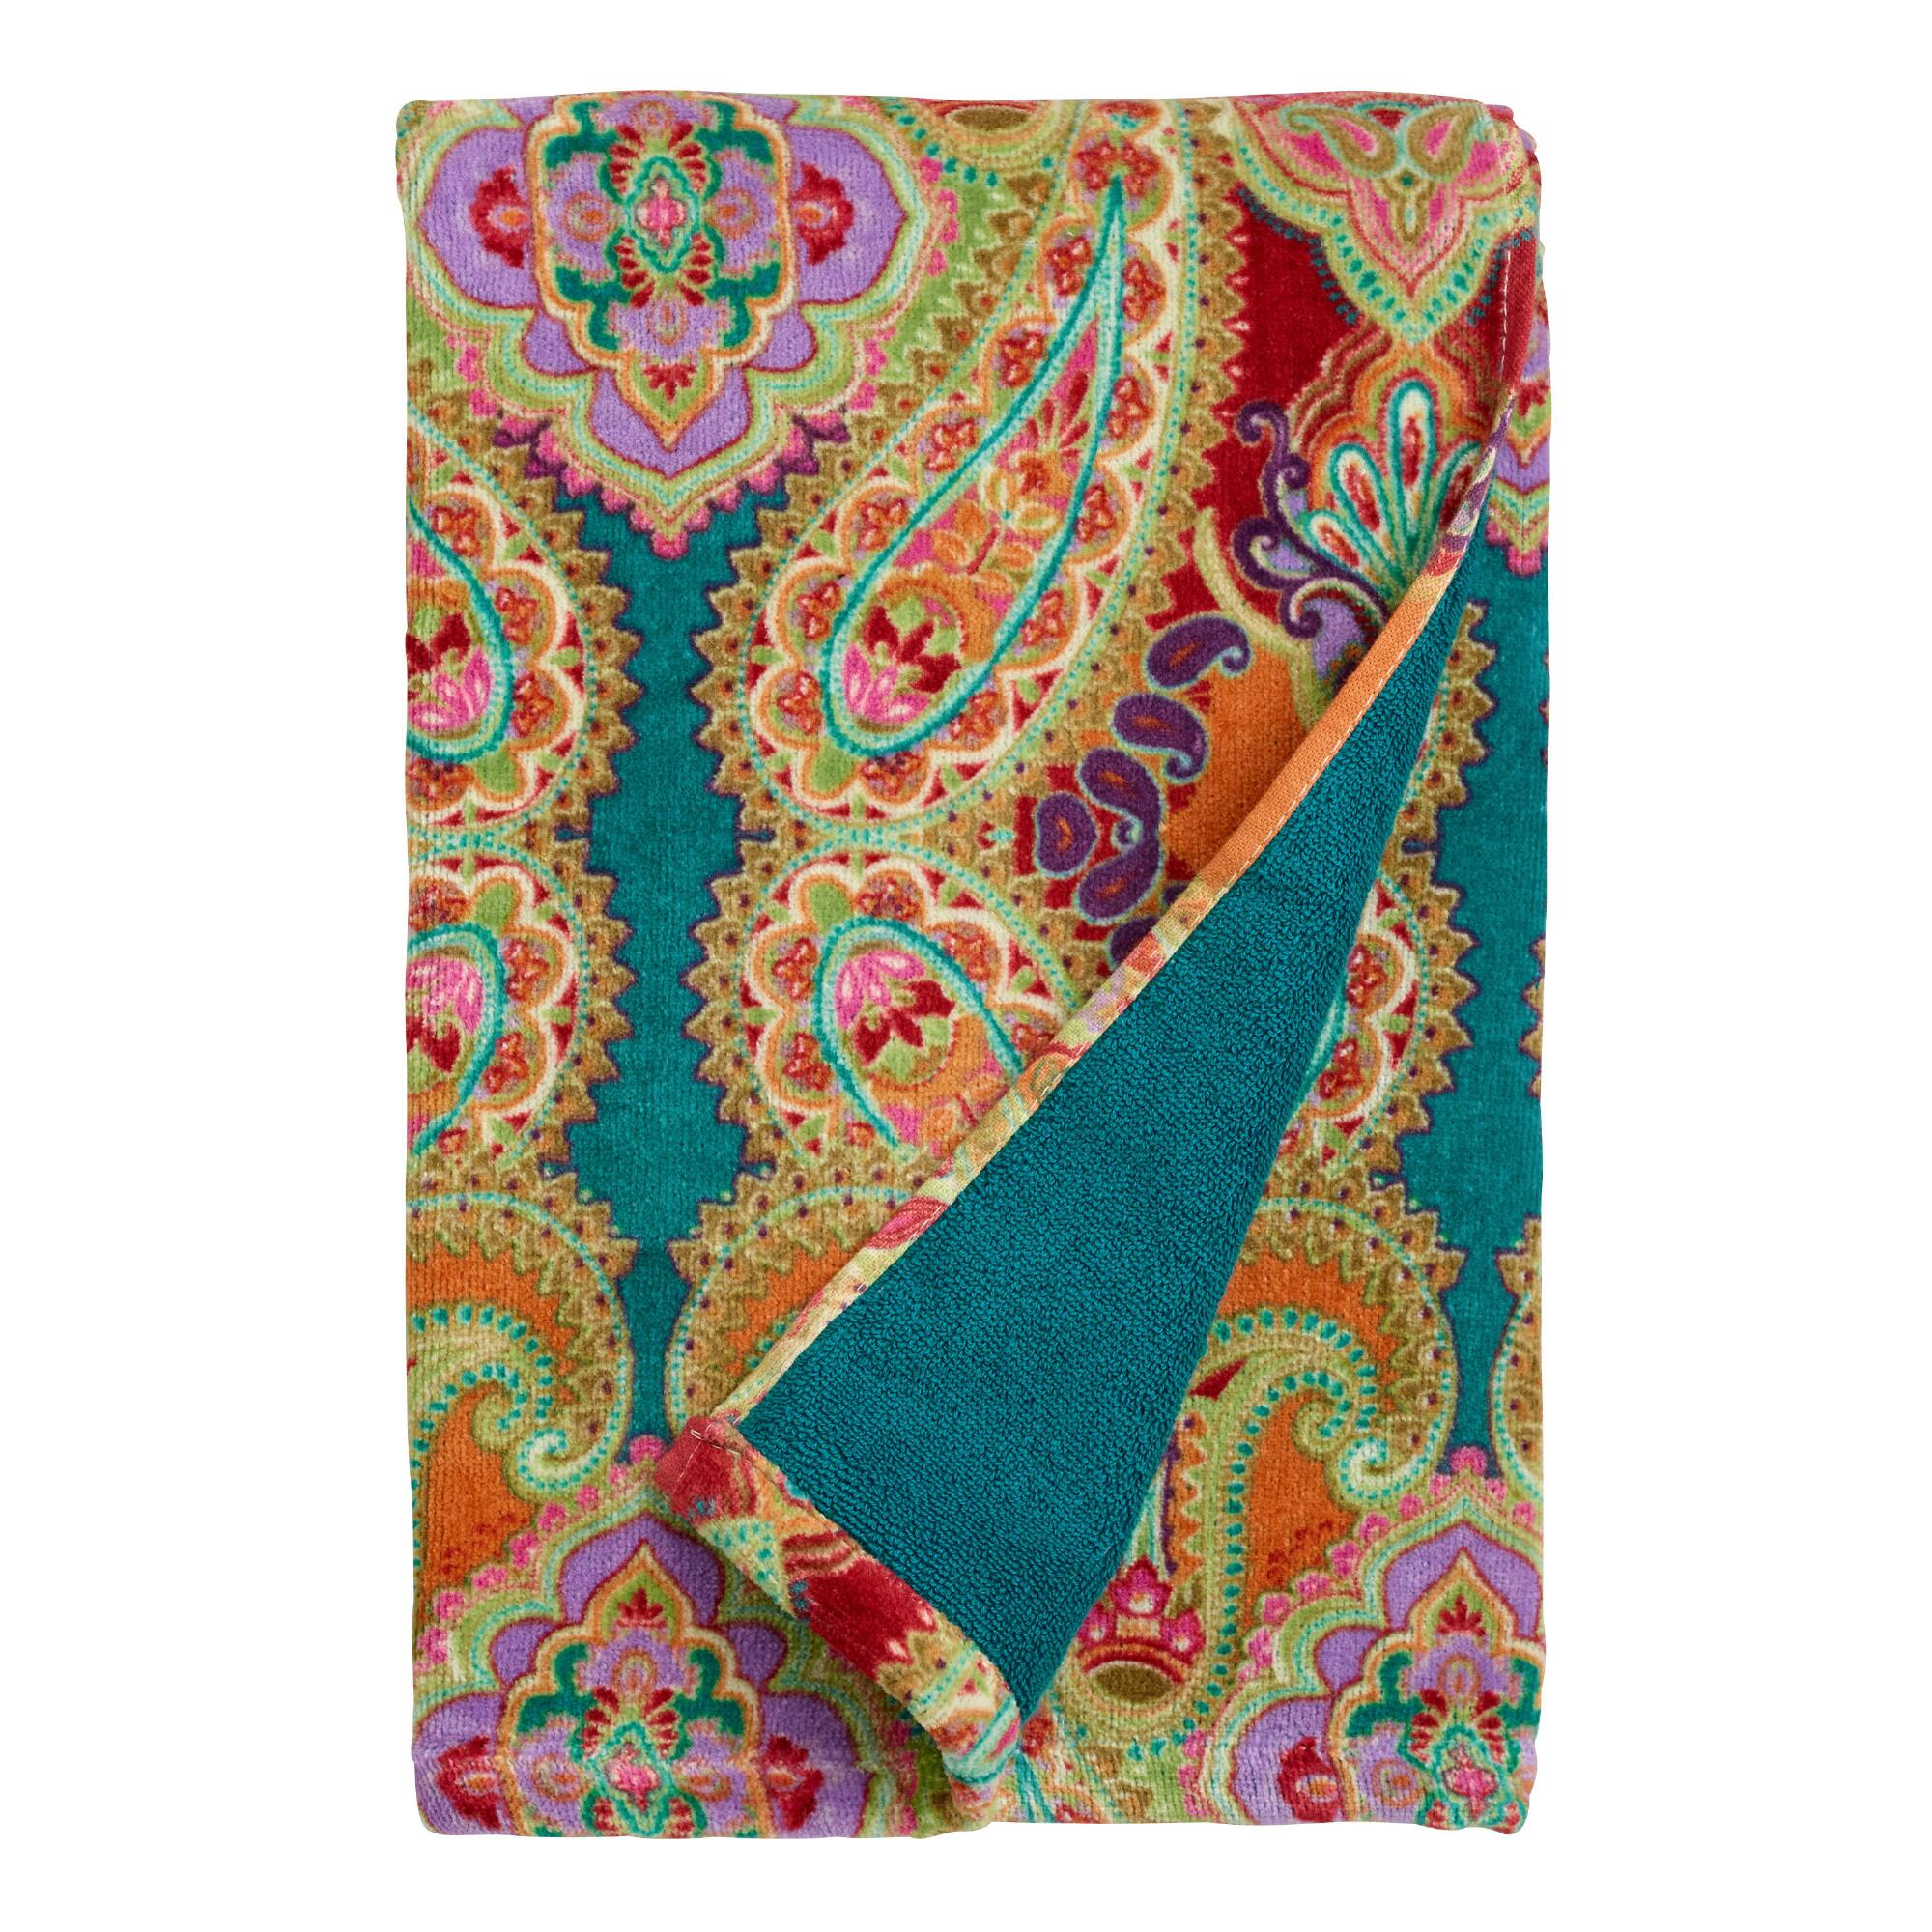 Venice Bath Towel - Cotton by World Market